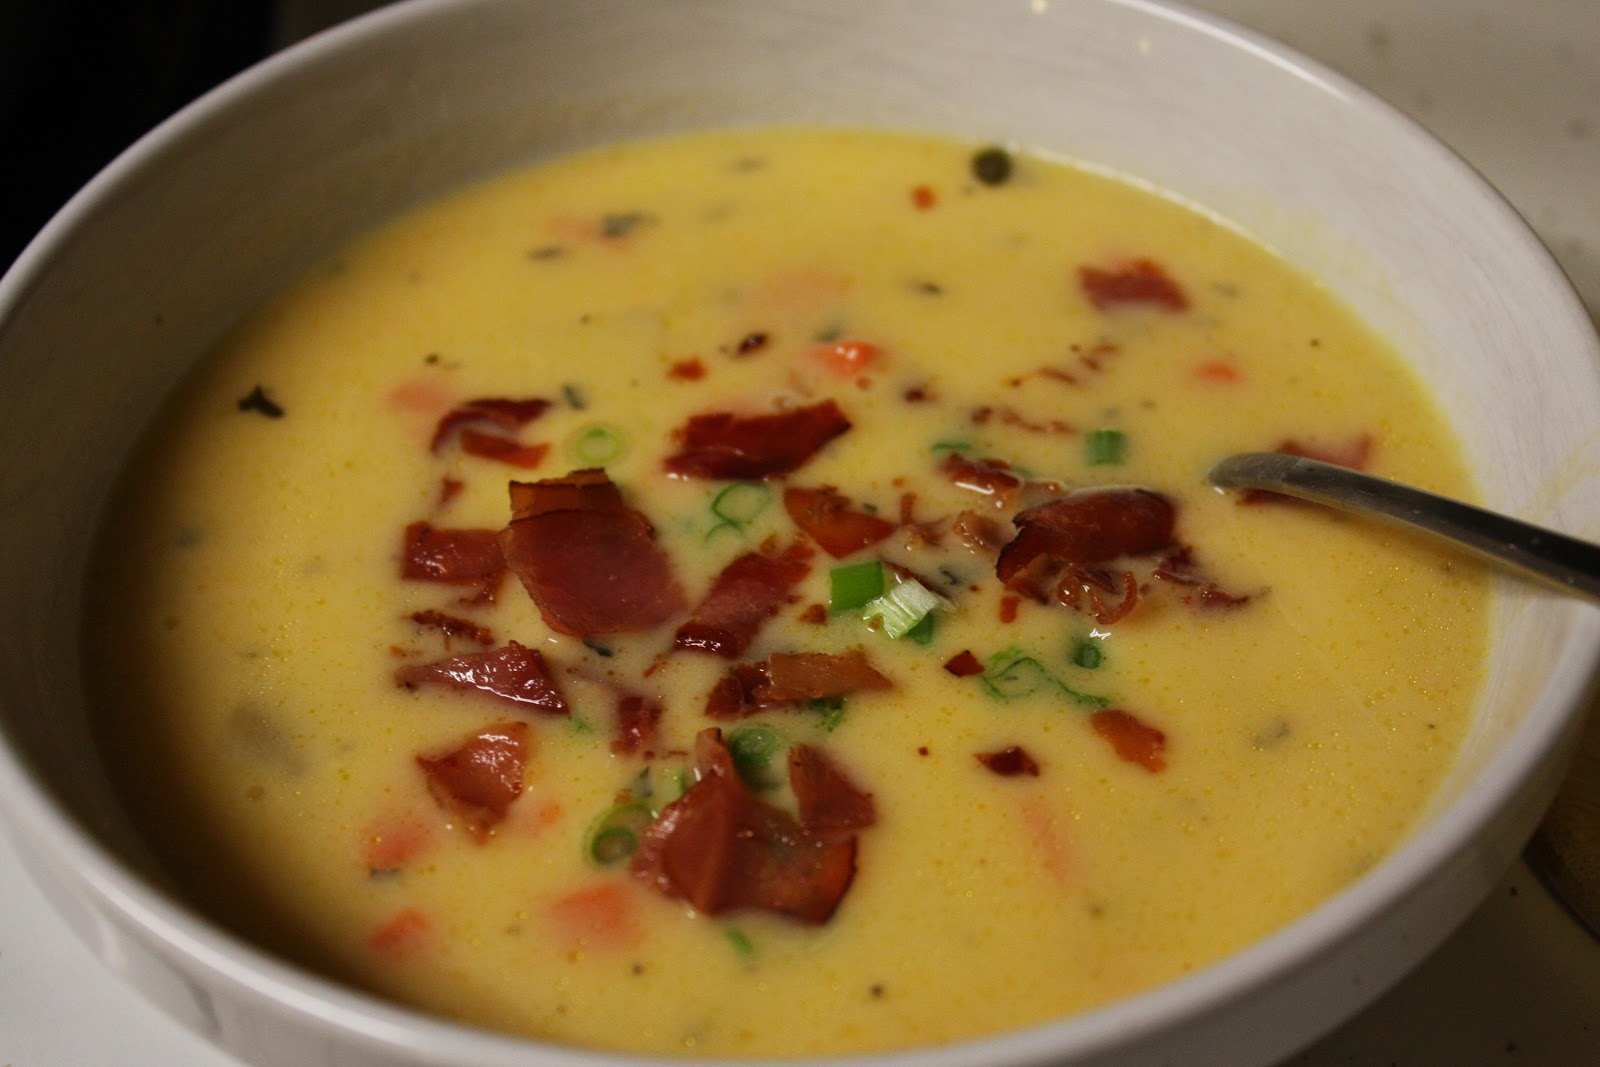 But you can call me crazy...: Cheesy Potato Soup